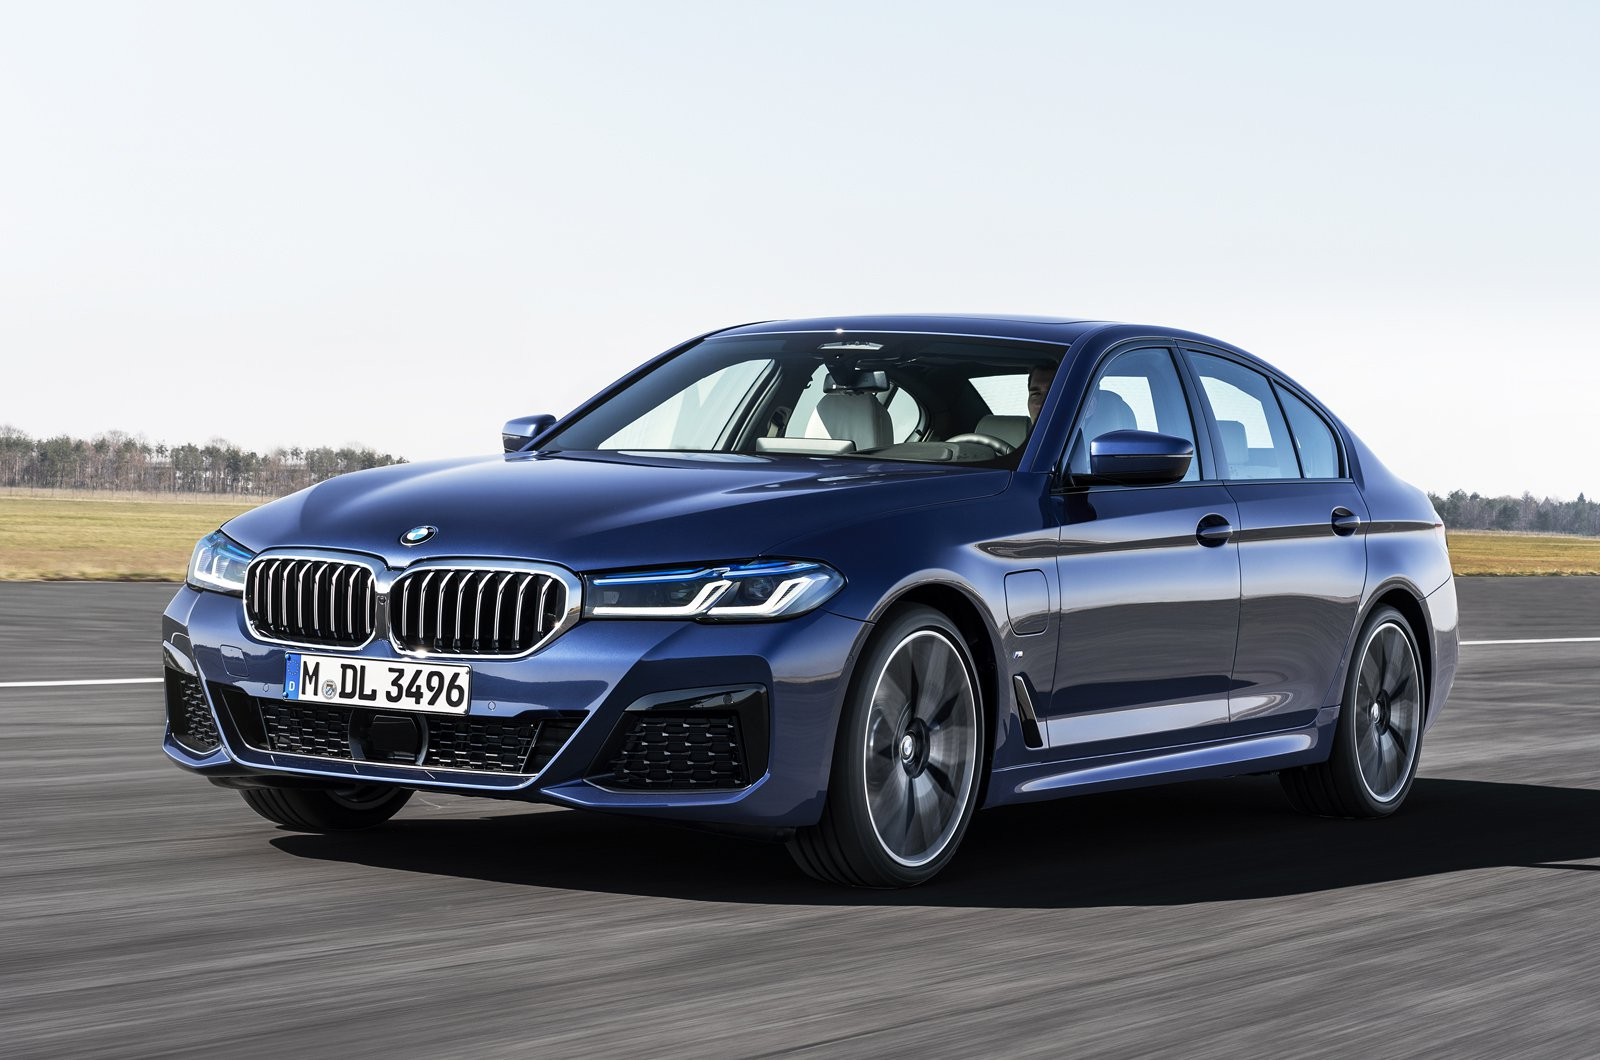 2021 BMW 5 Series saloon front tracking - German plate